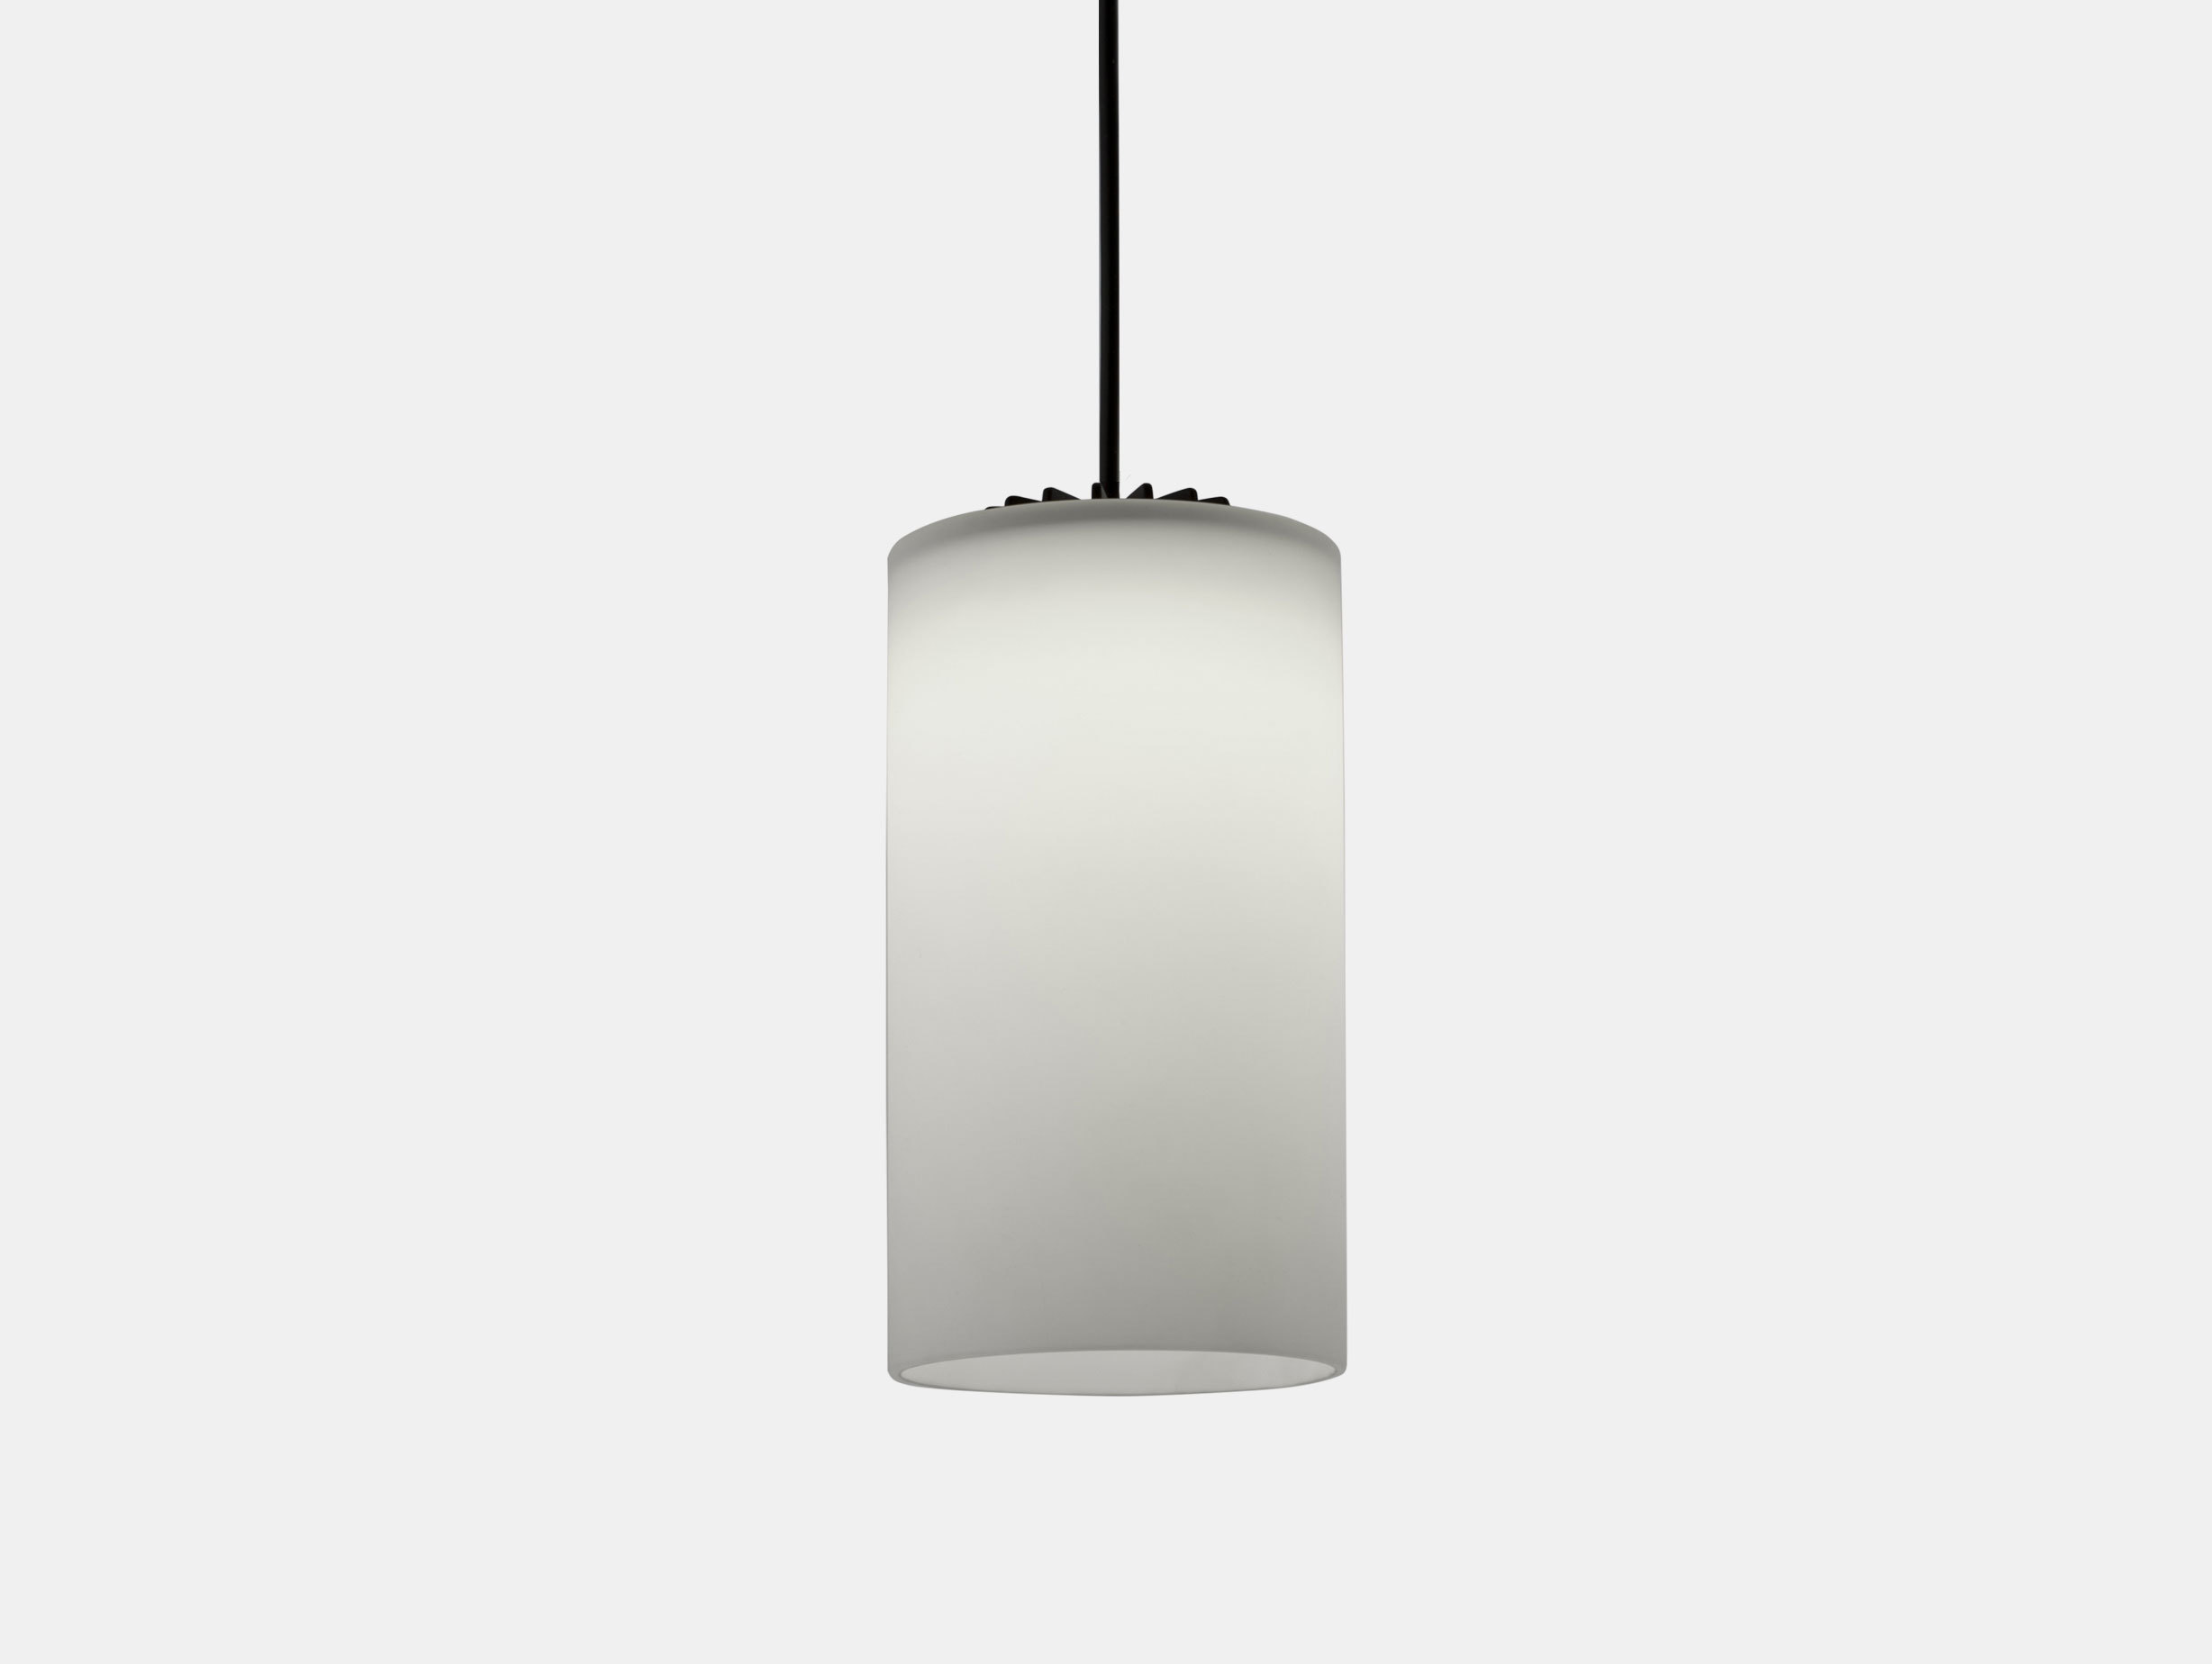 Cirio Simple Pendant Light image 2